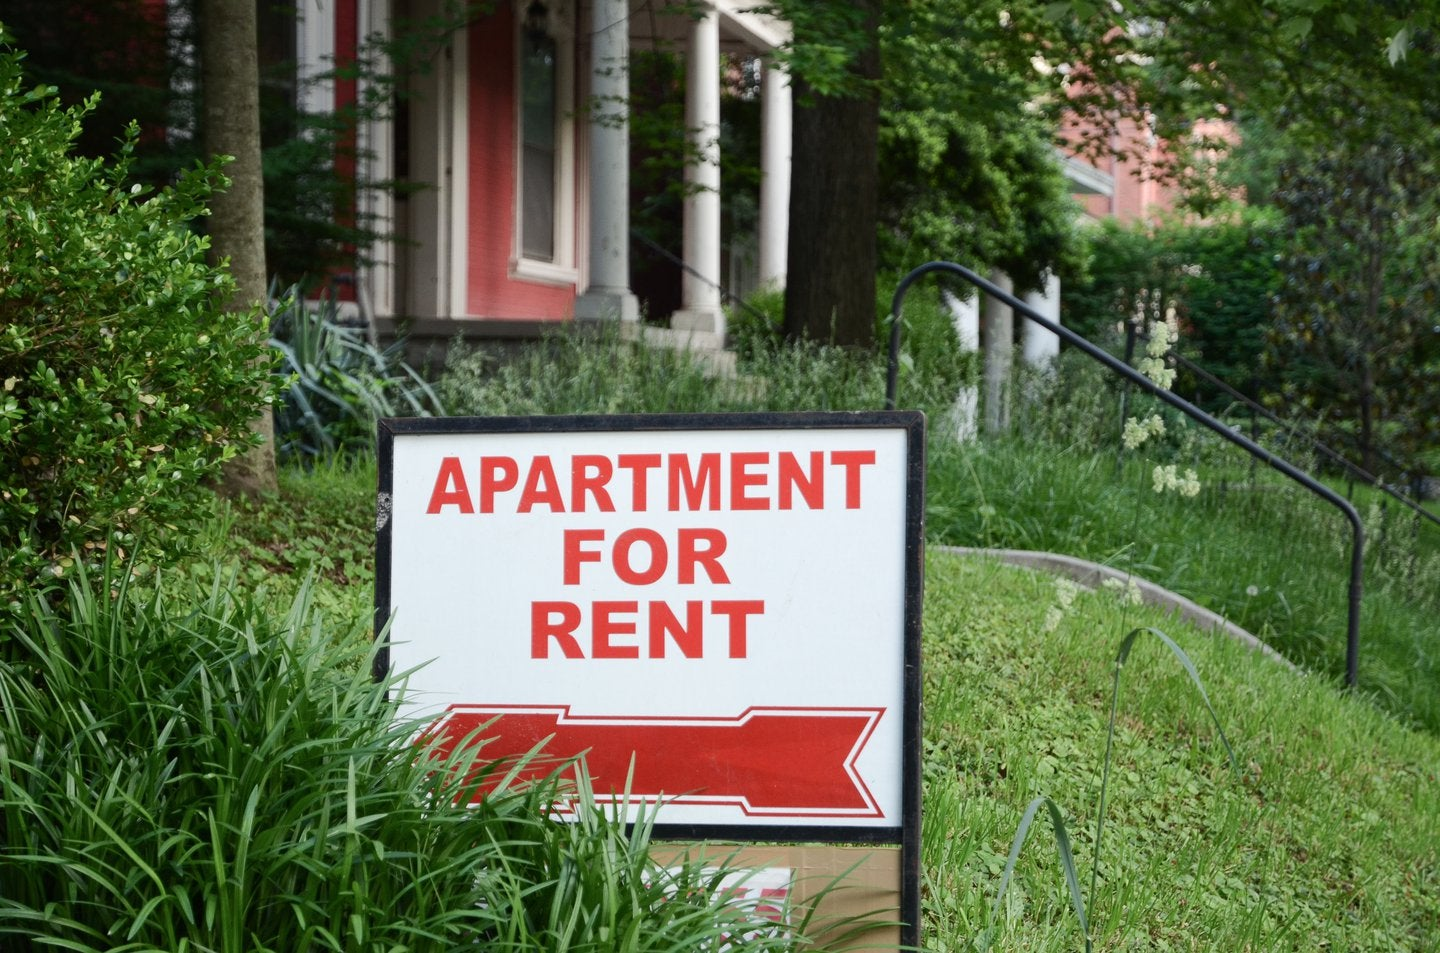 apartment for rent sign.jpg